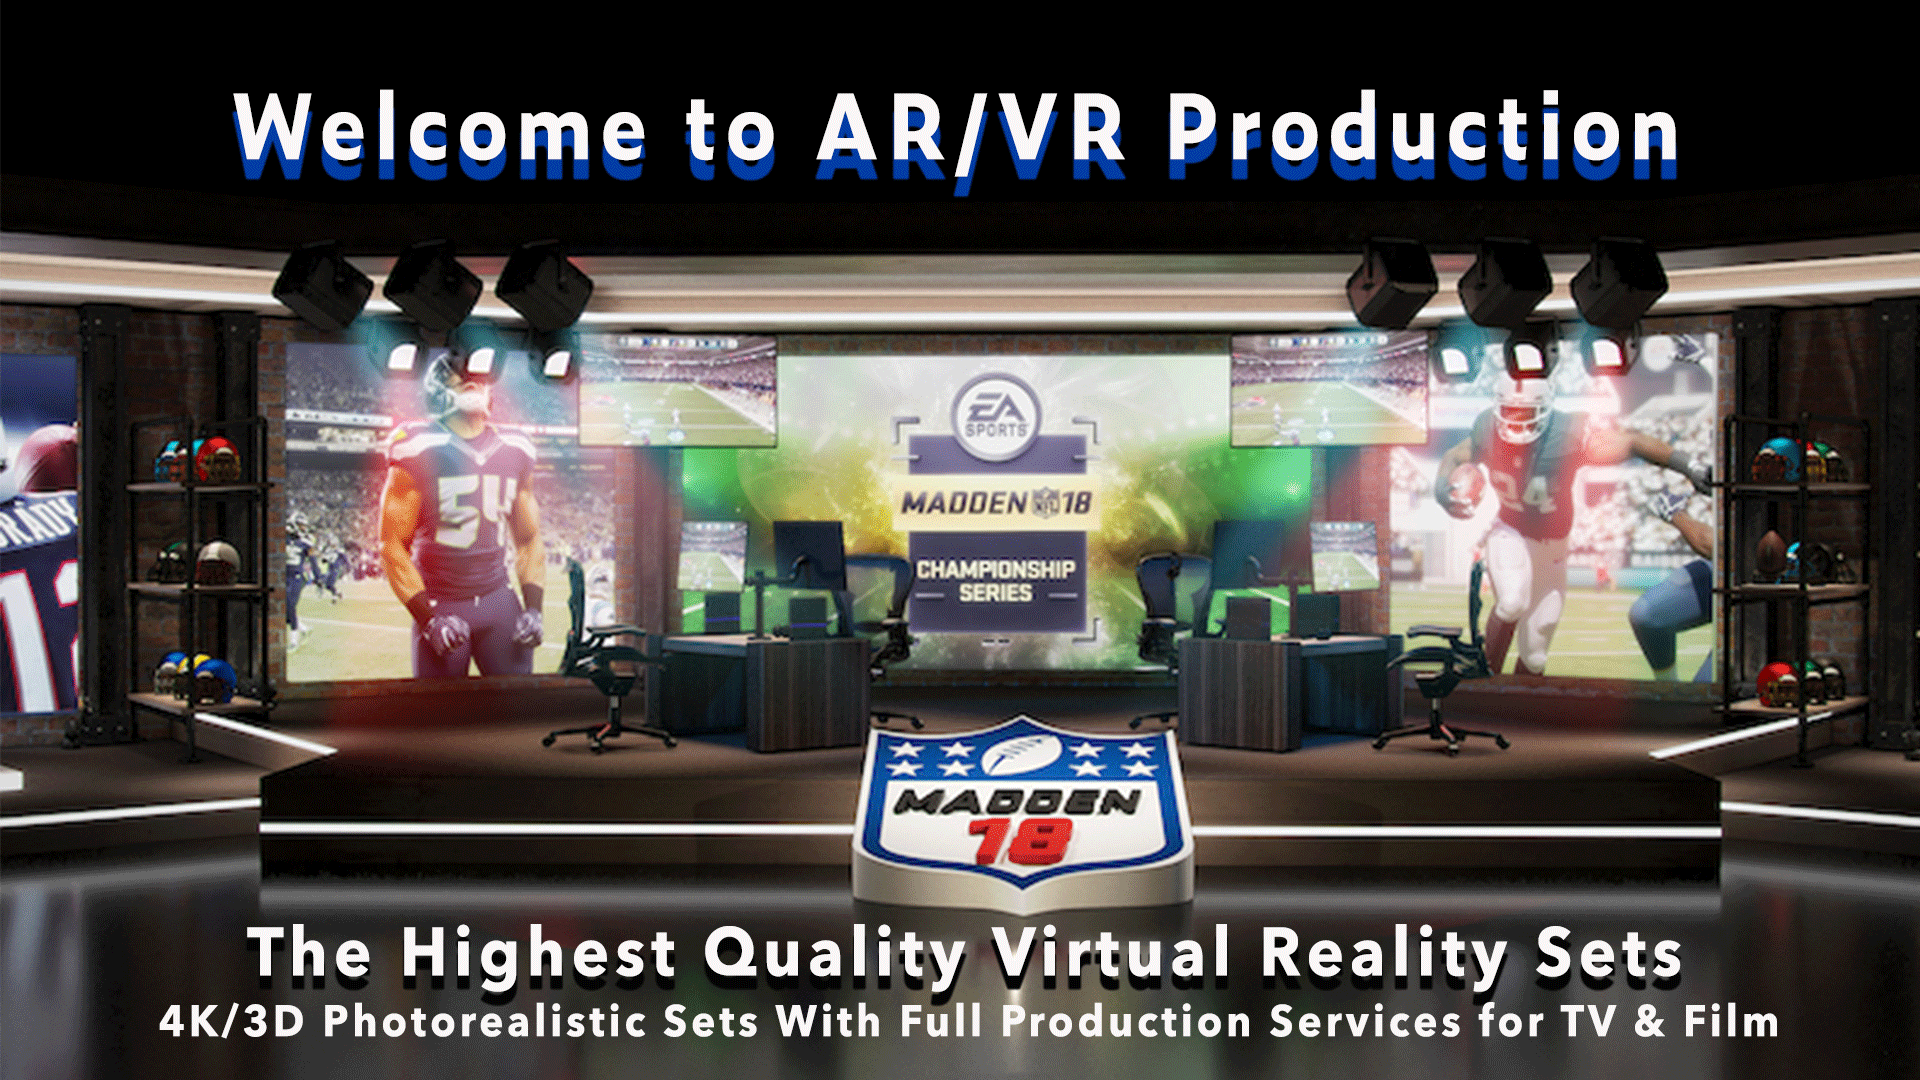 AR/VR production, welcome to AR/VR Production, the highest quality virtual relaity sets, background is a sports broadcasting virtual set